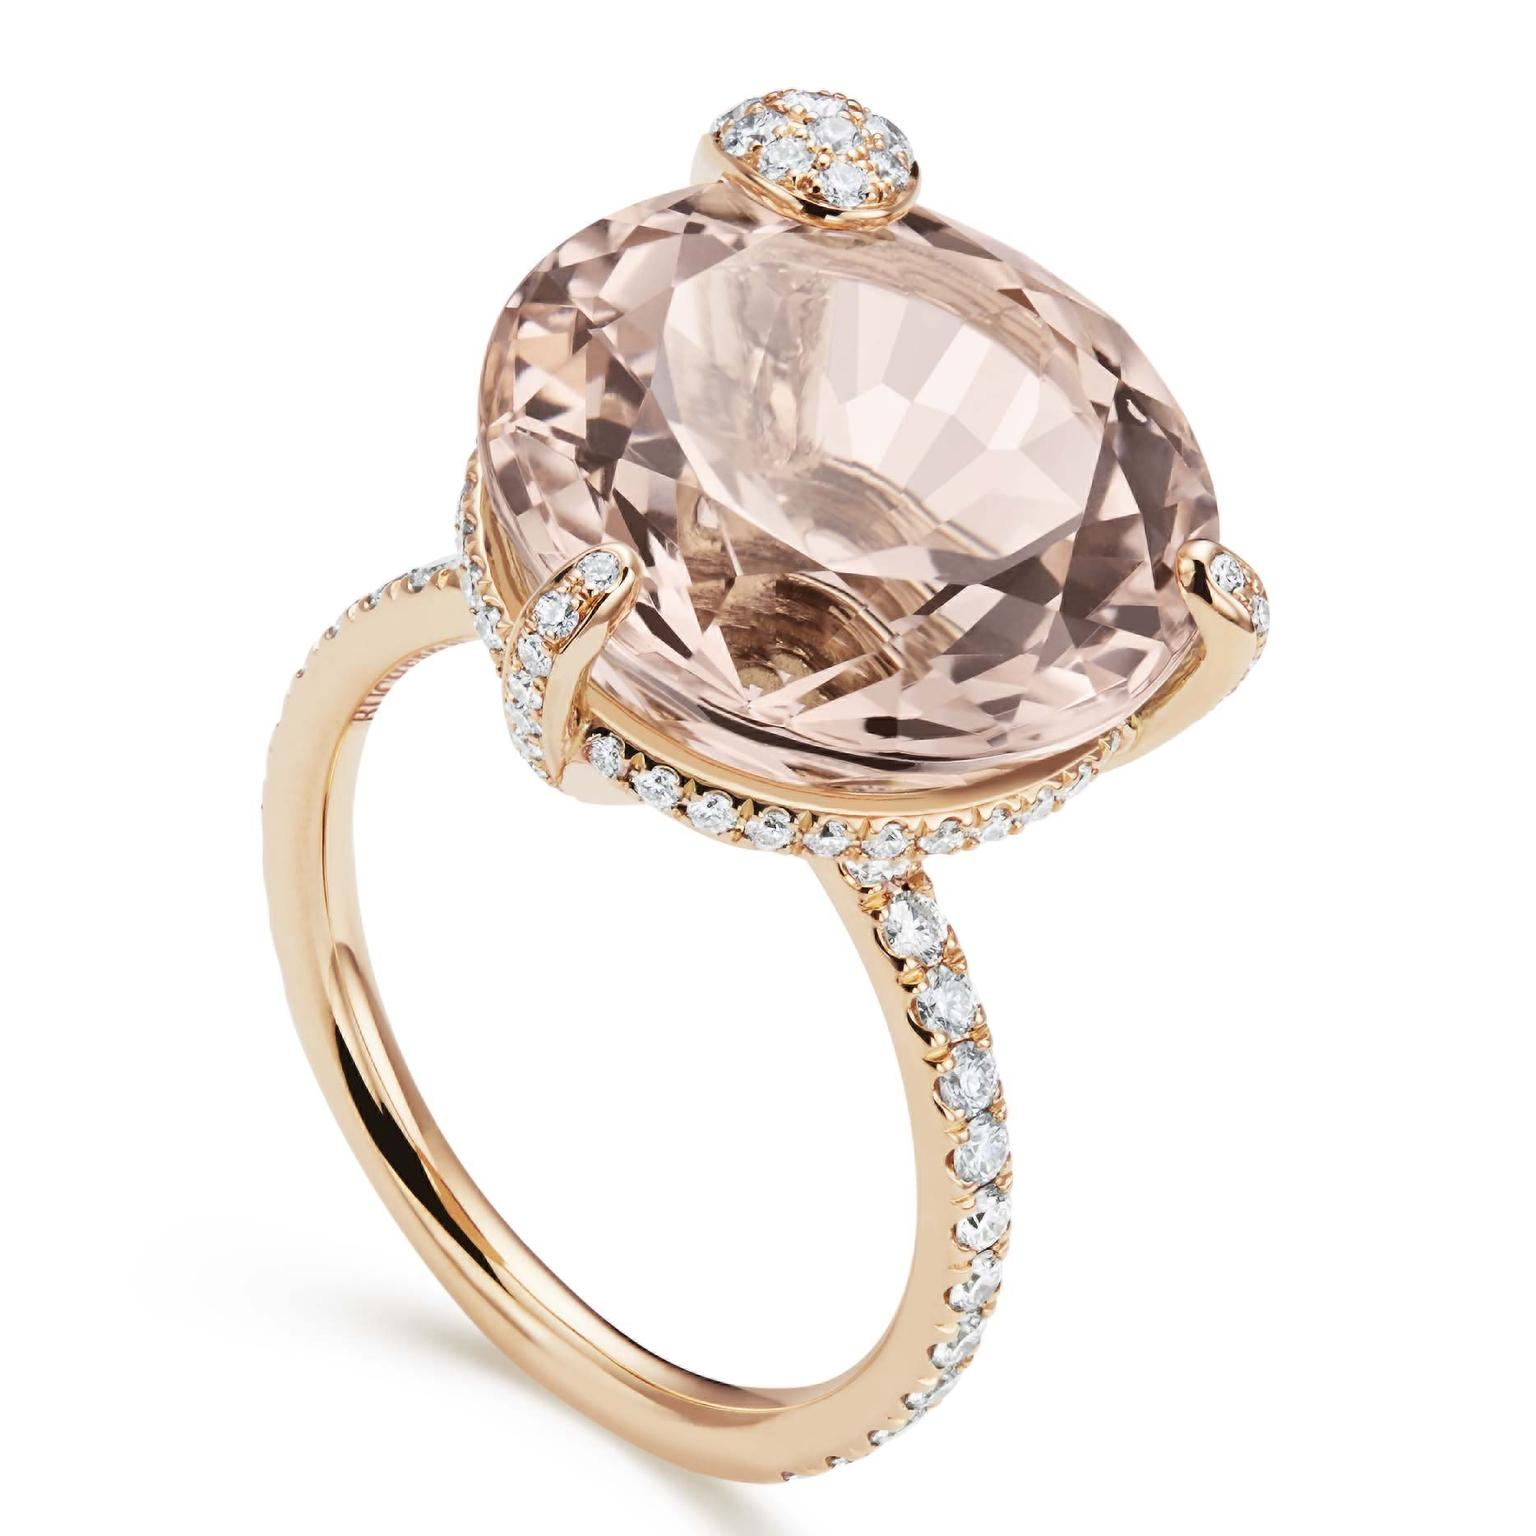 Peekaboo engagement ring from Bucherer with morganite and diamonds